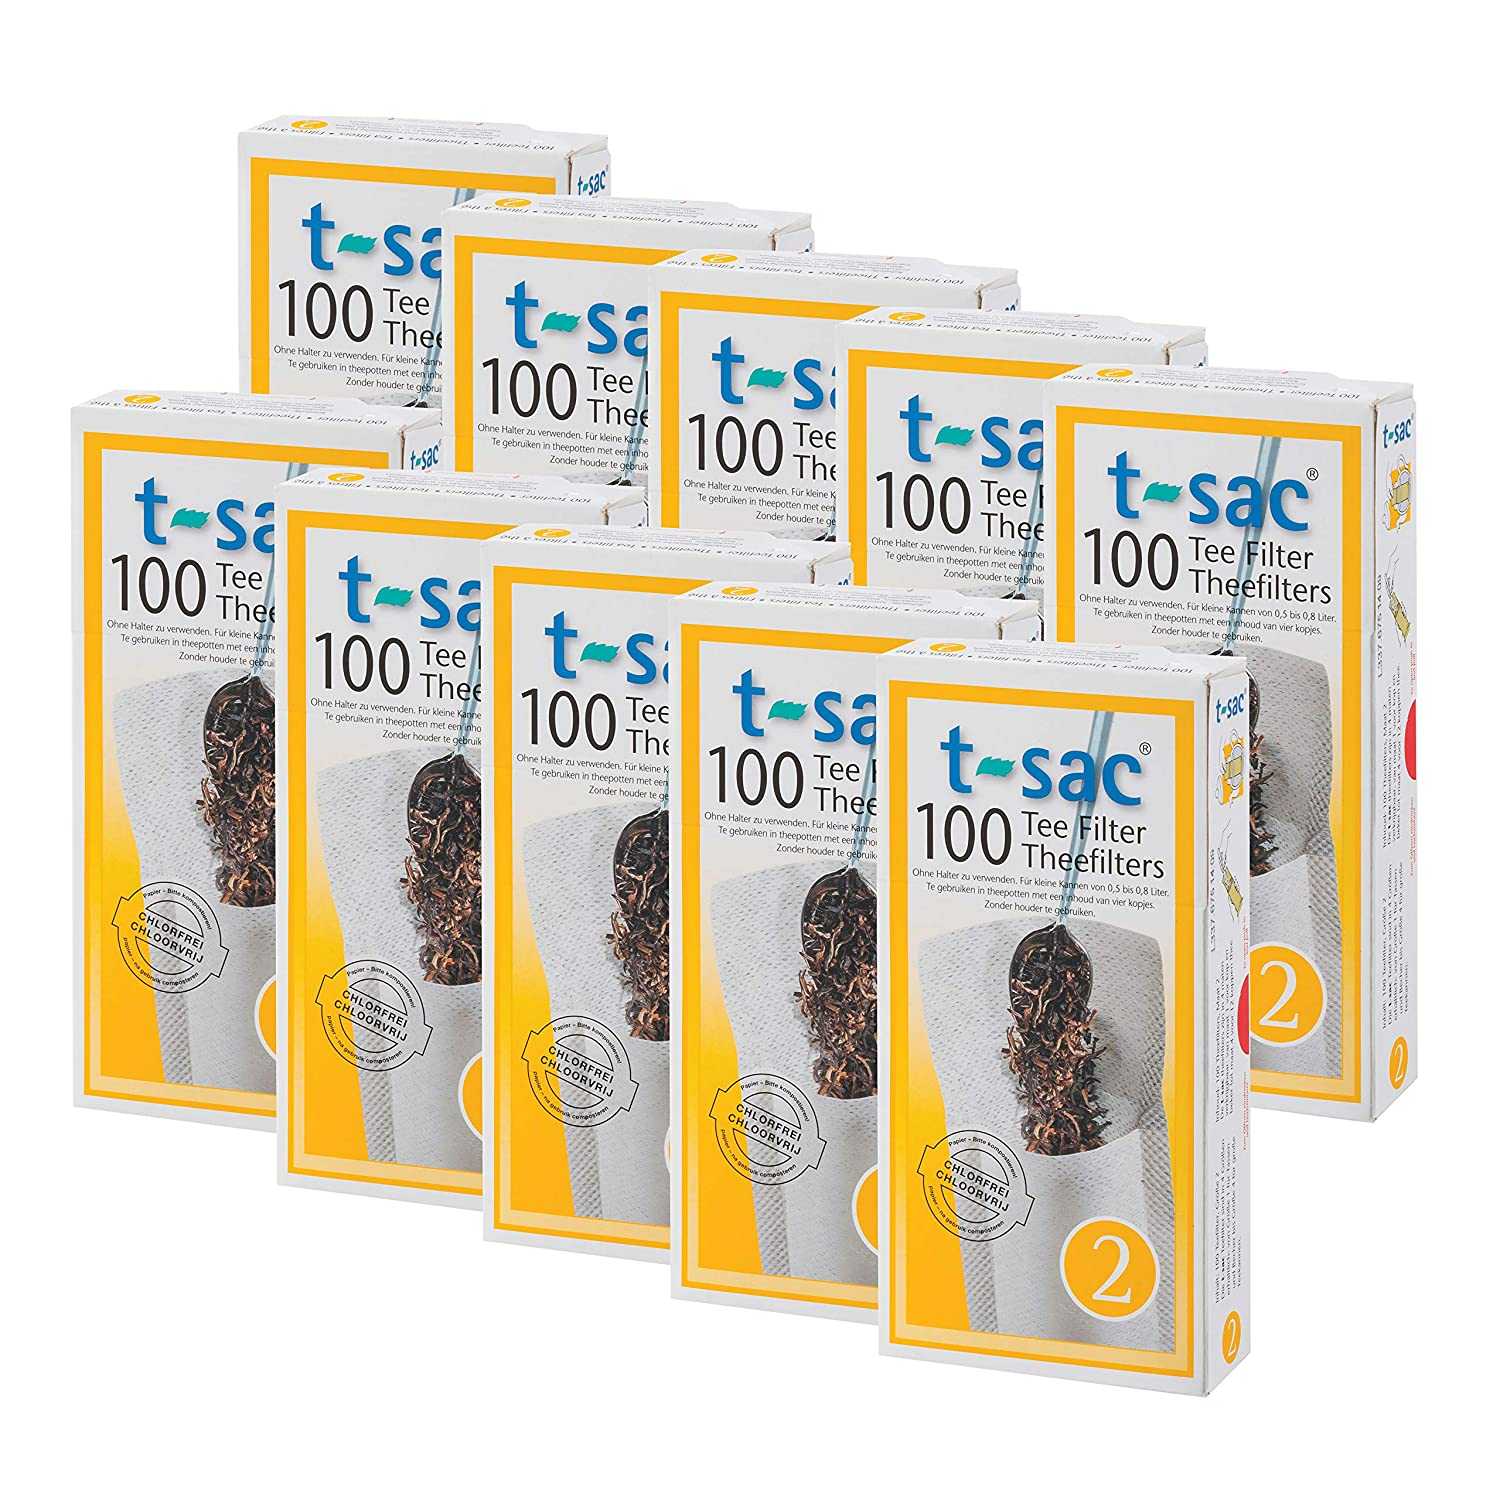 1-Cup Capacity T-Sac Tea Filter Bags Number 1-Size Disposable Tea Infuser Set of 1,000 by T-Sac